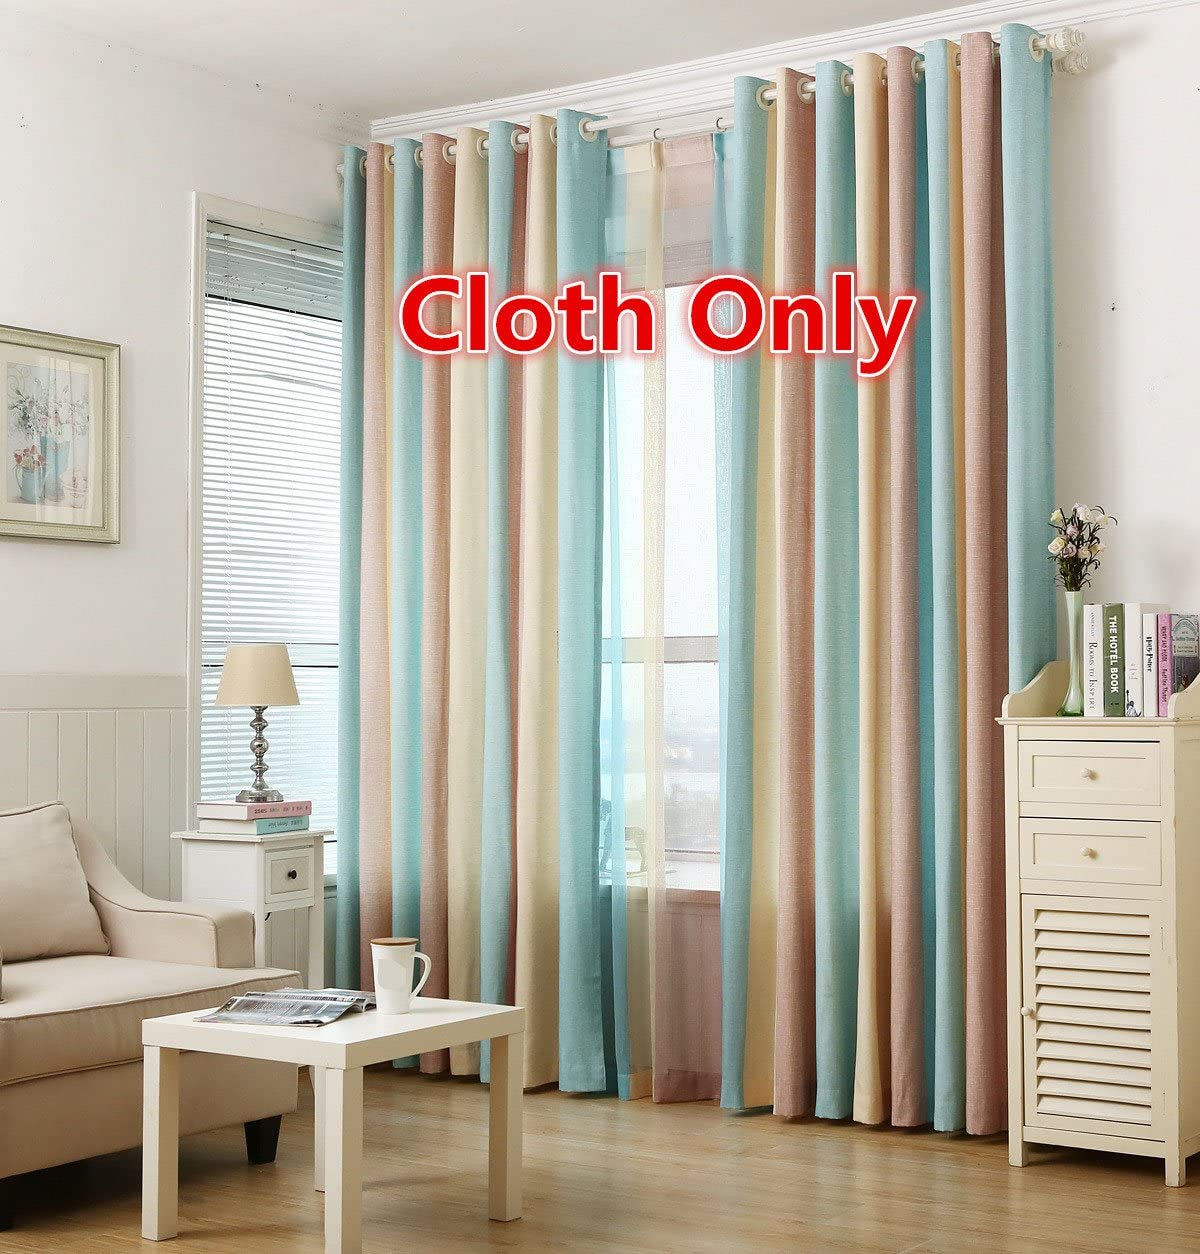 WPKIRA Window Treatment Sets One Pair Grommet Top Rainbow Vertical Stripes Cotton Linen Semi-Blackout Window Curtain Drapes Panel for Living Room Colorful 2 Panels Width 52 Inch by Length 96 Inch